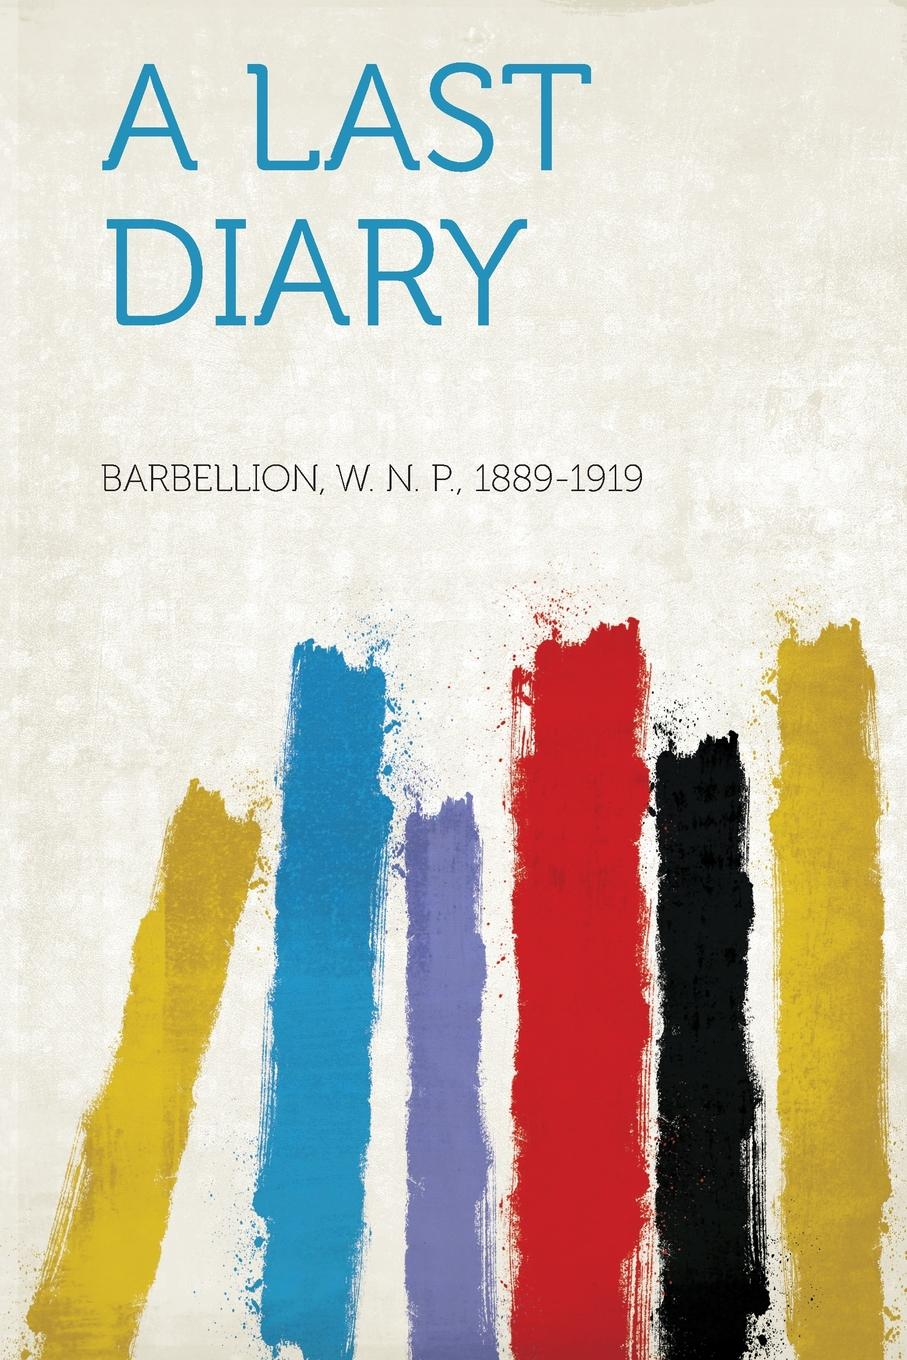 Barbellion W. N. P. 1889-1919 A Last Diary w n p barbellion the journal of a disappointed man